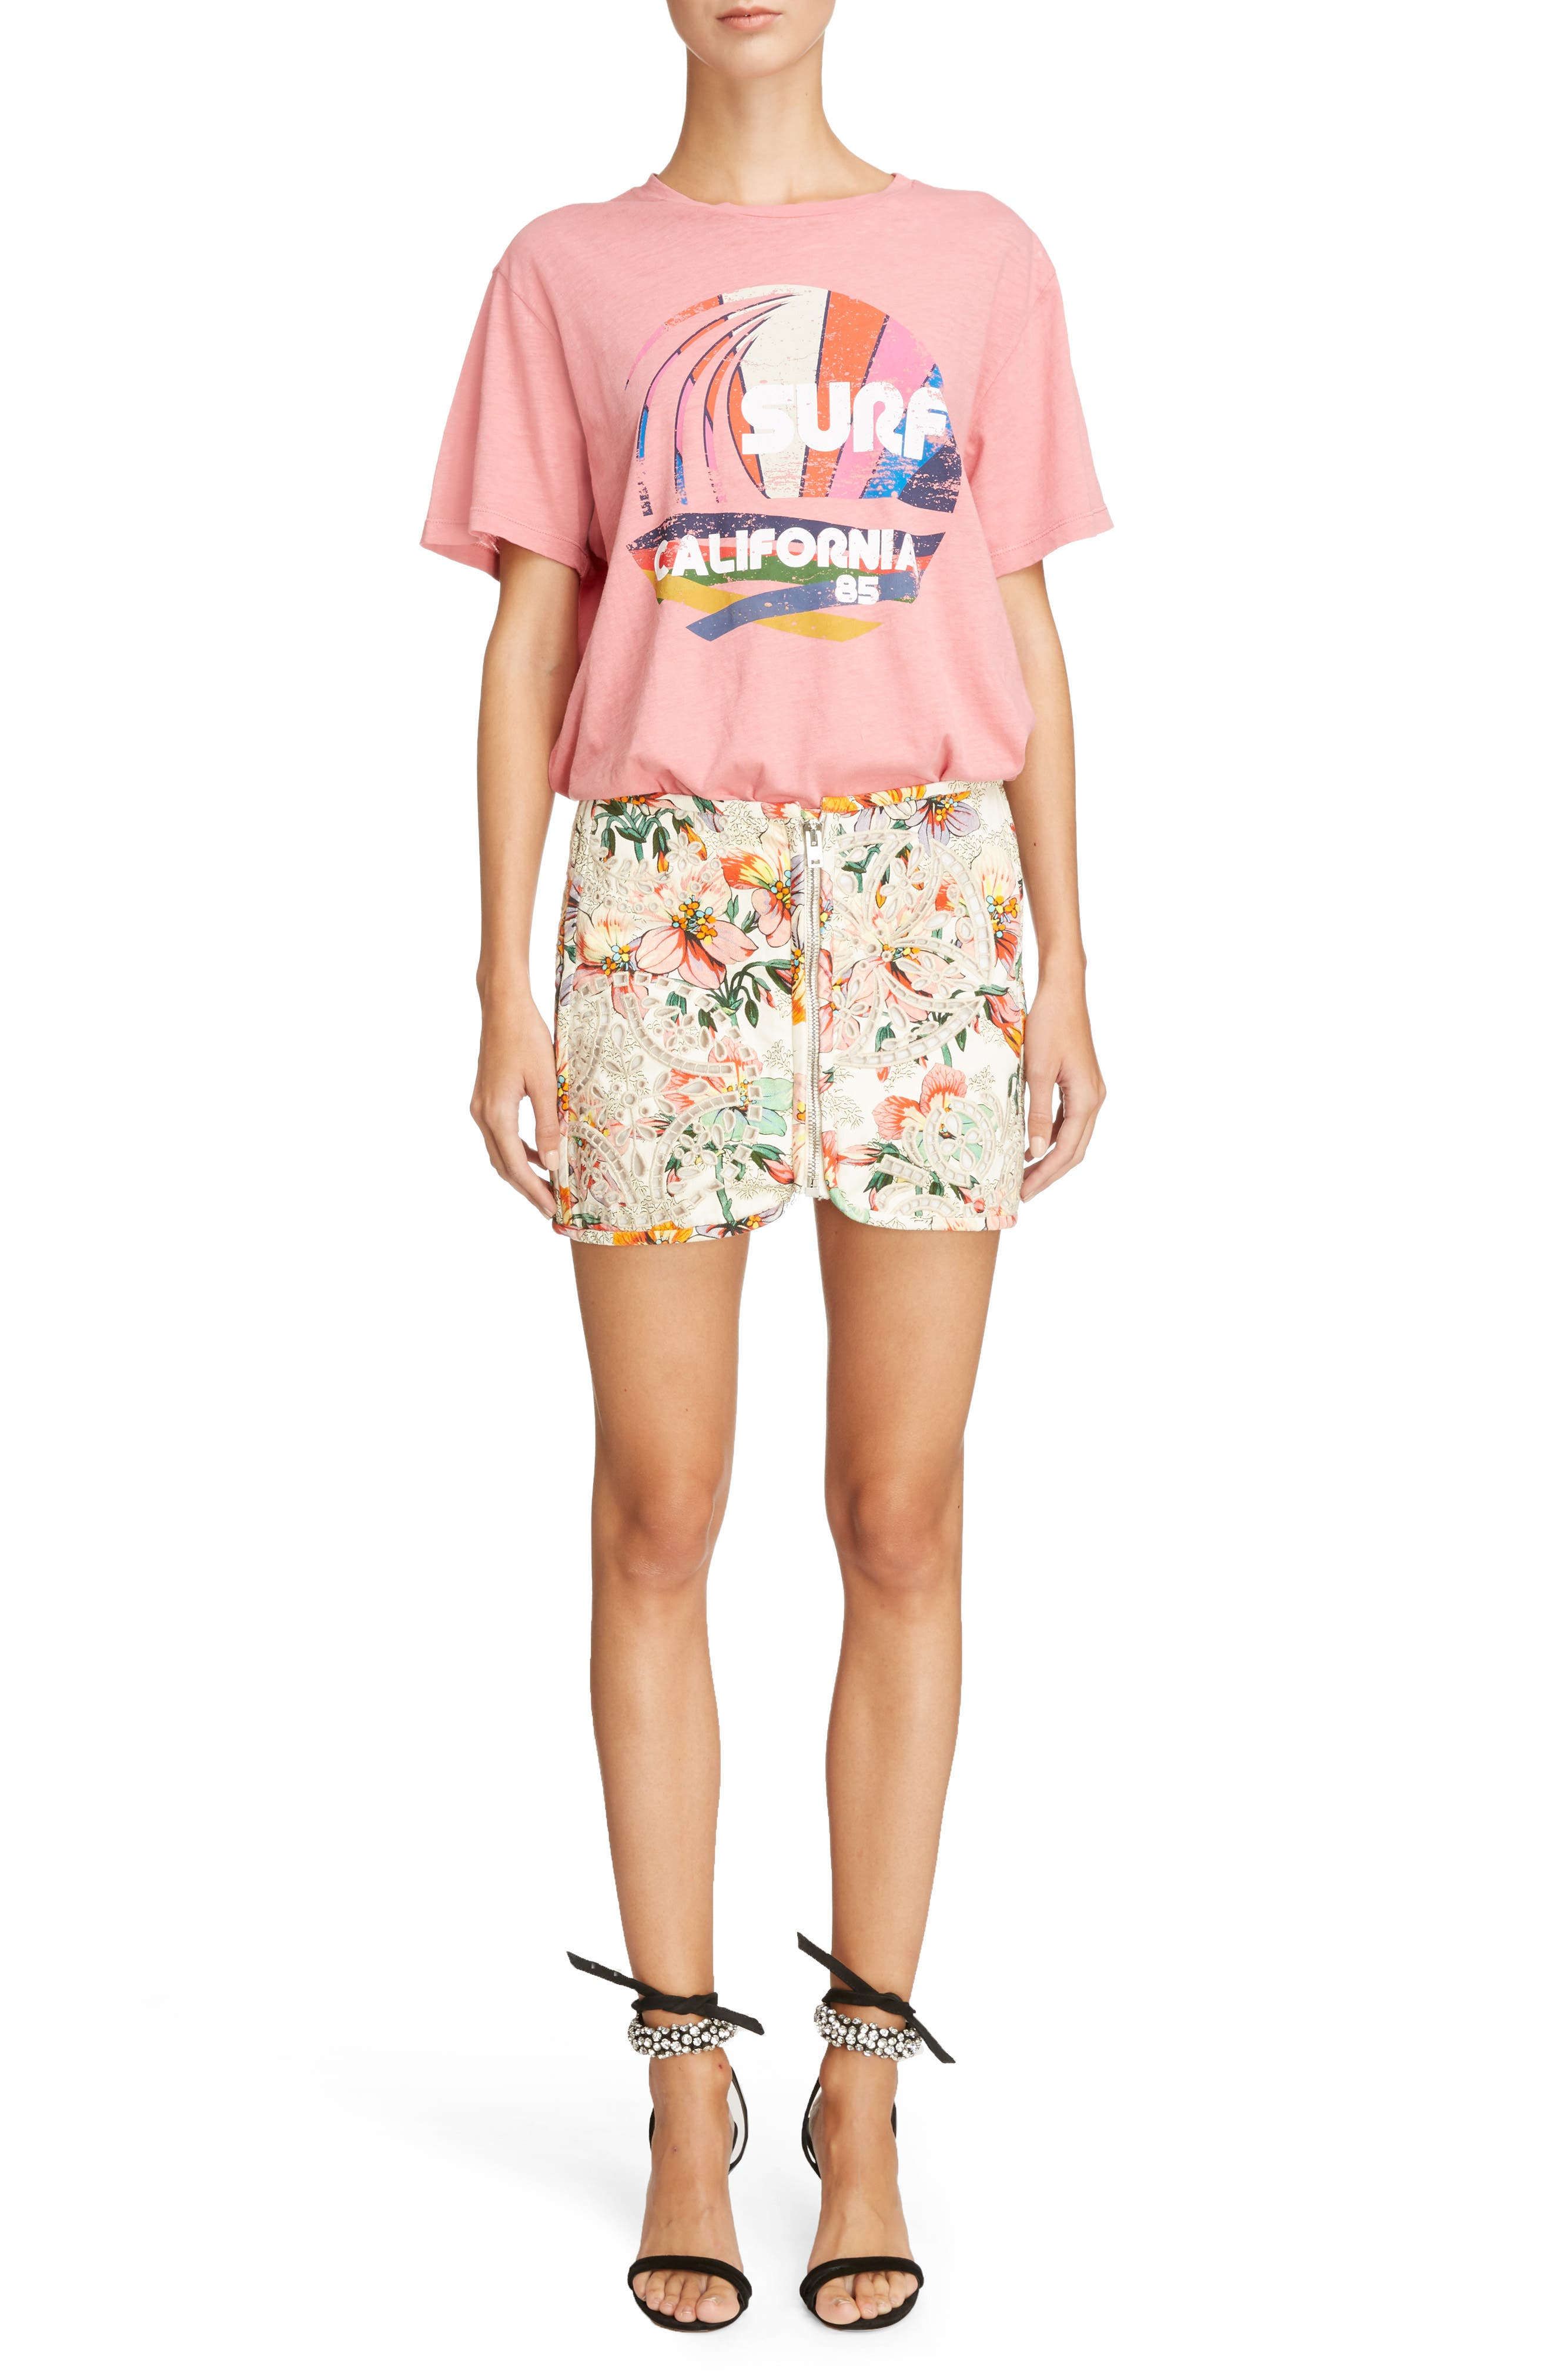 Surf California Tee,                             Alternate thumbnail 6, color,                             CANDY PINK